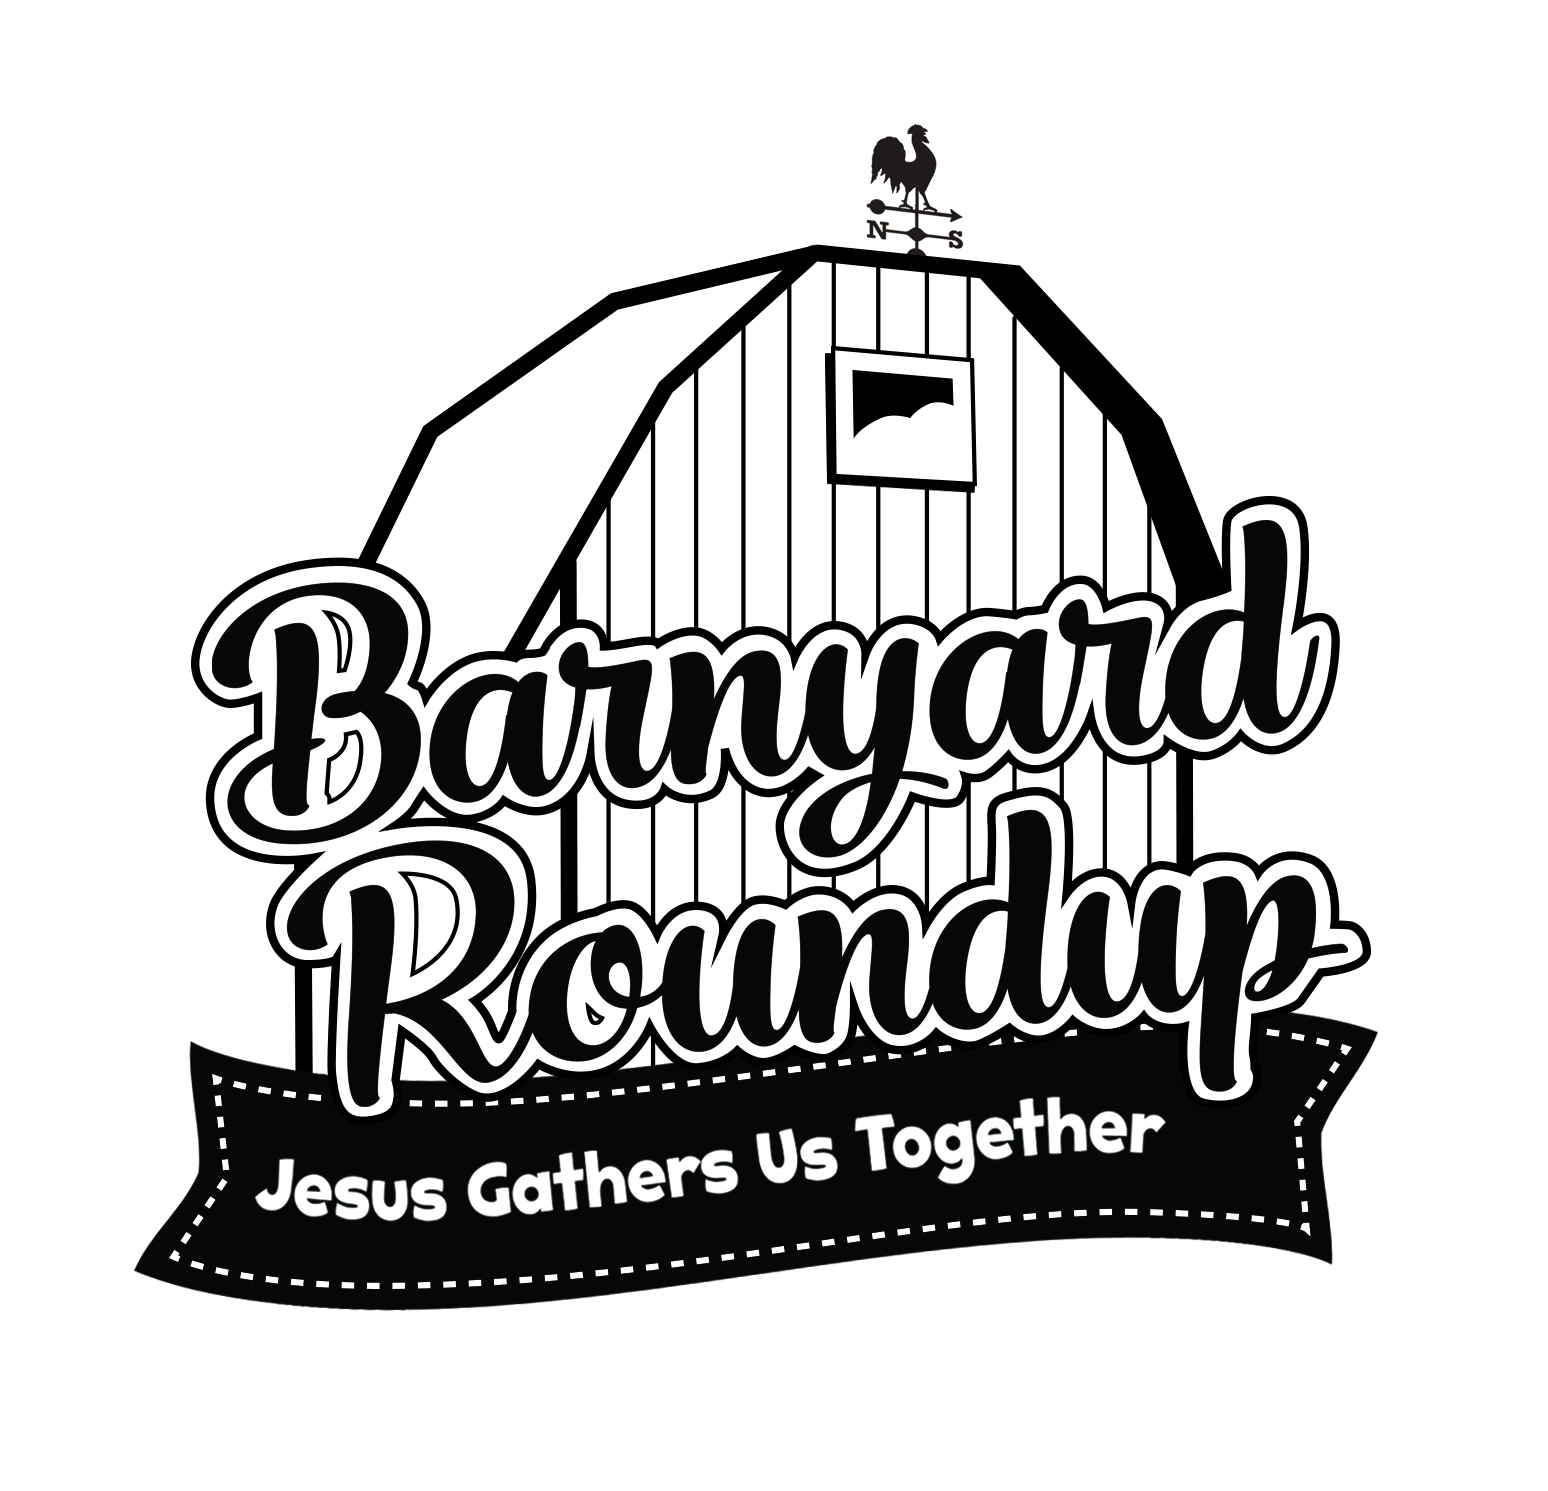 Barnyard roundup vbs clipart picture black and white stock CPH VBS | Vacation Bible School 2016 - Barnyard Roundup - Downloads picture black and white stock